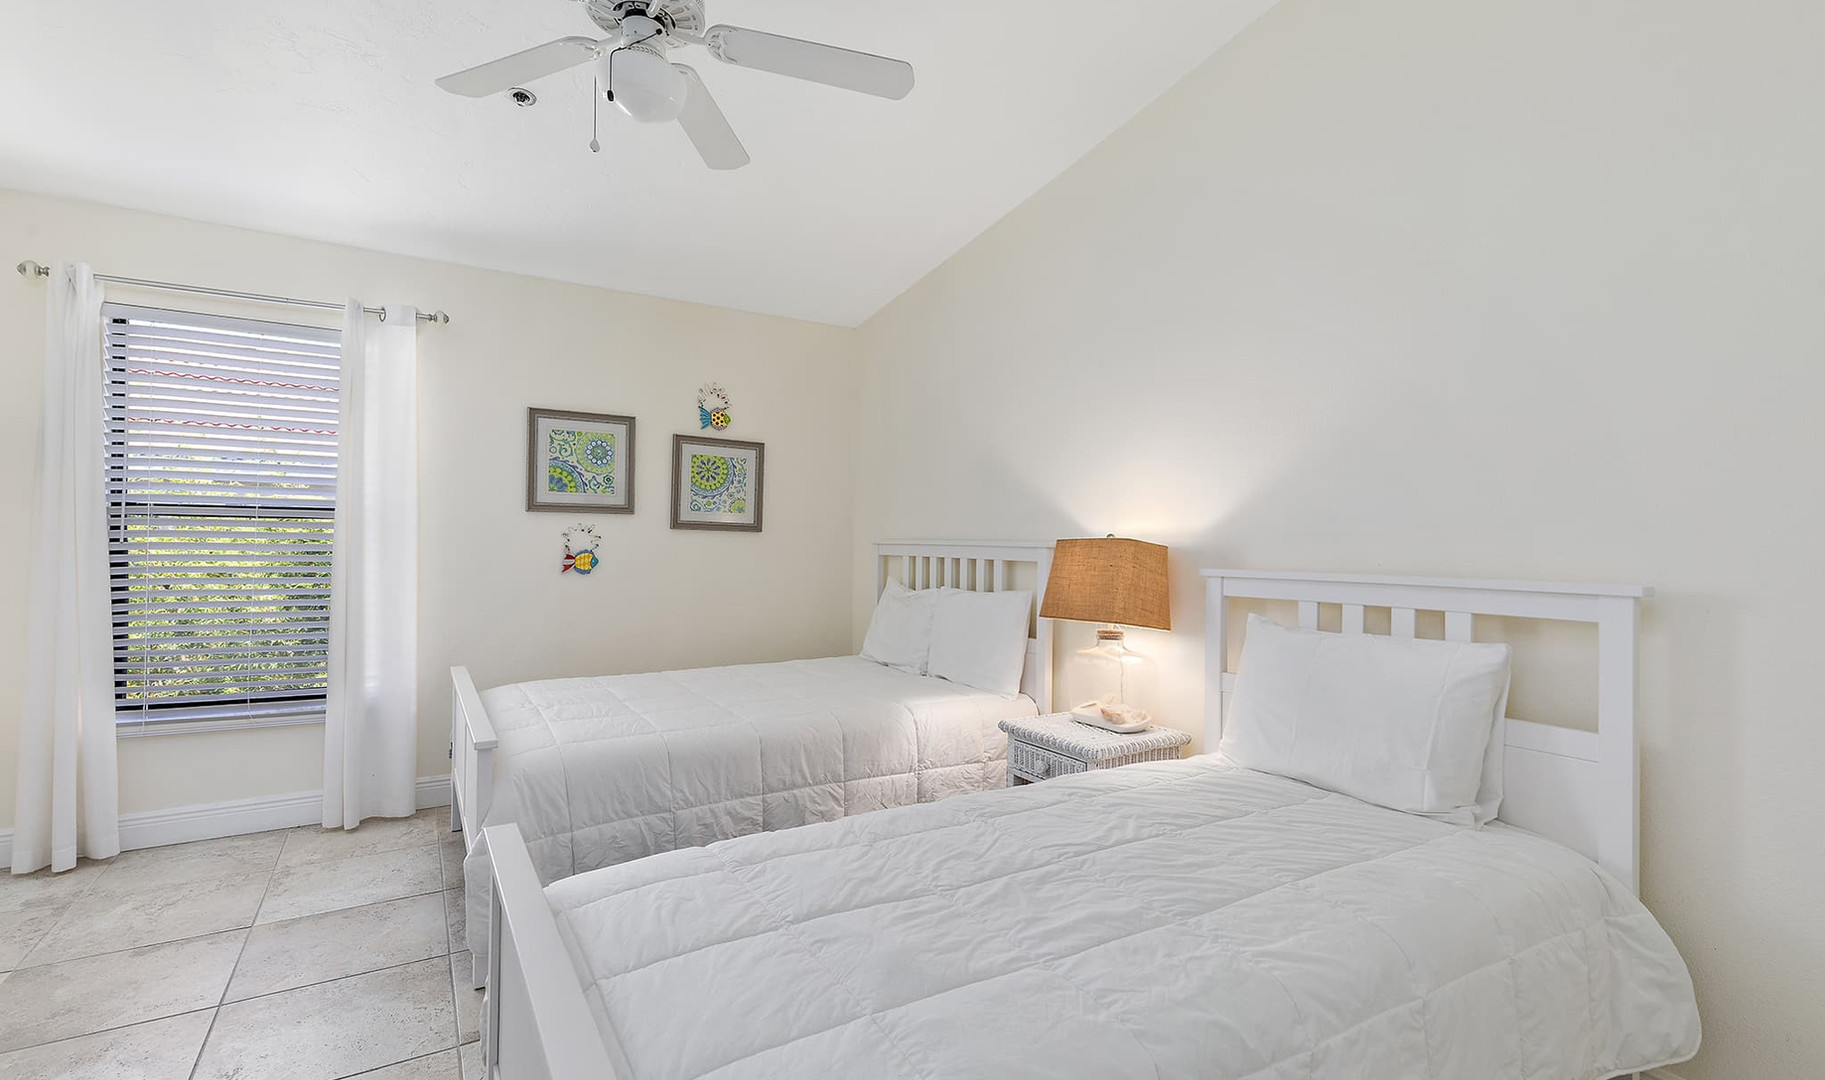 Second bedroom with full size bed and tw